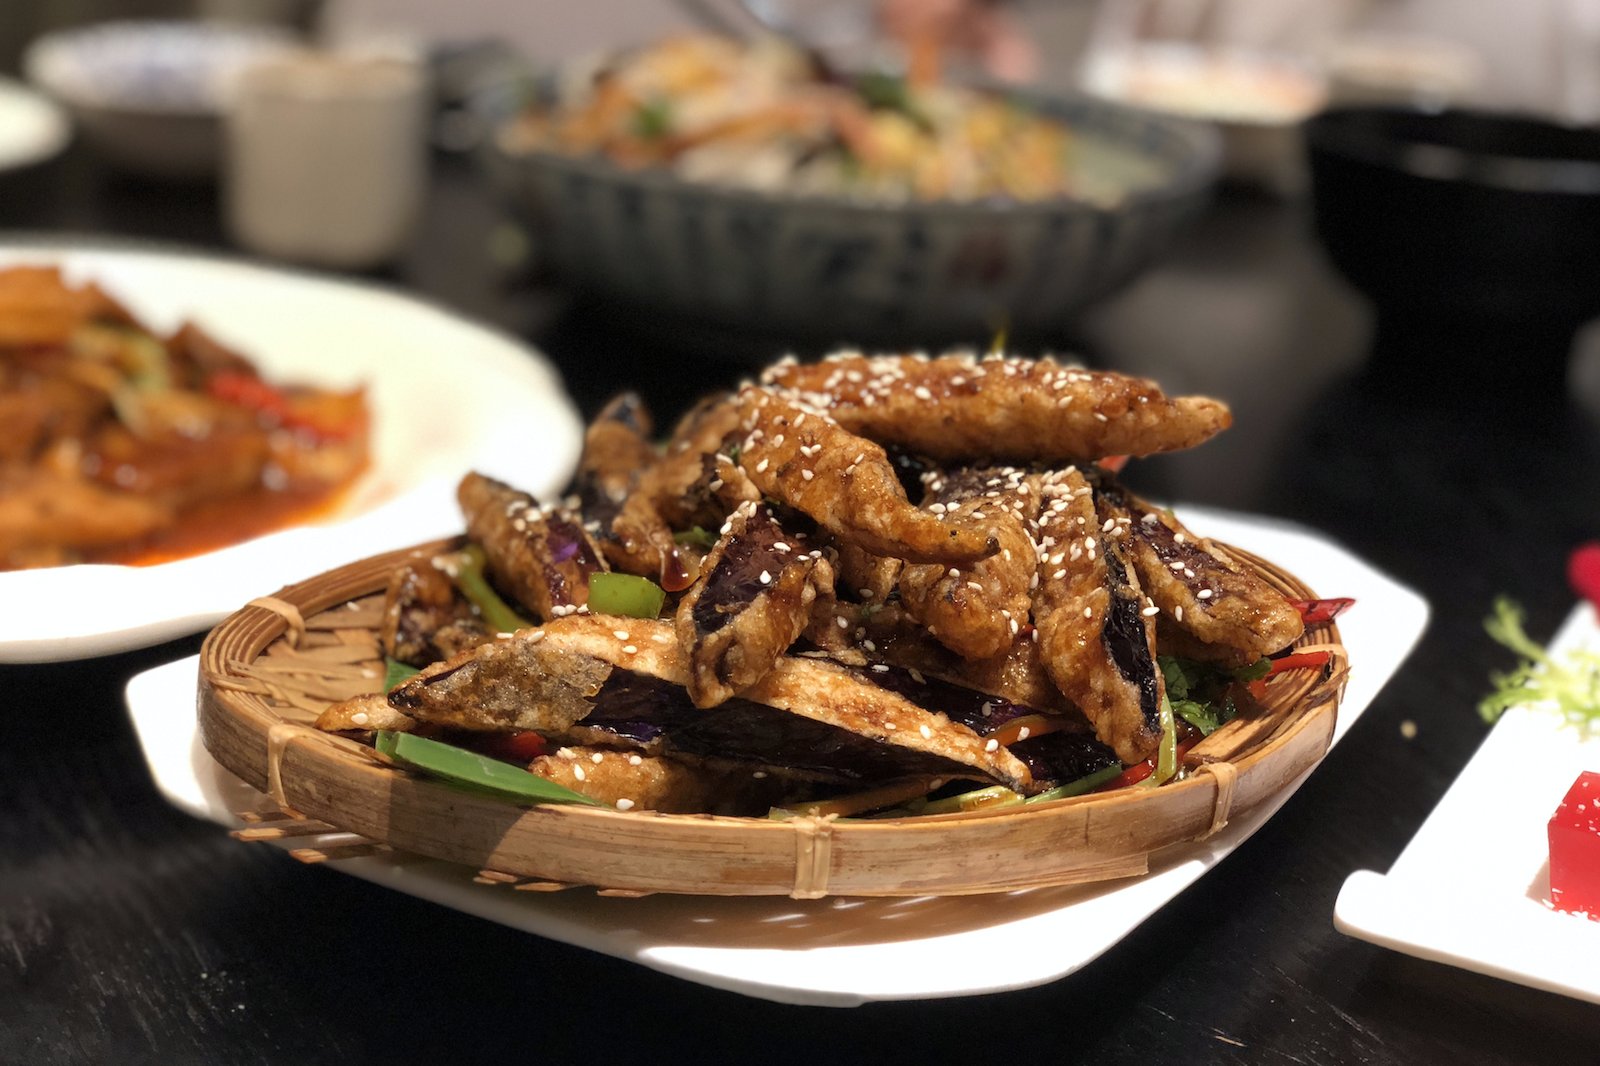 This battered and fried yuxiang eggplant looked like fried fish and was insanely delicious